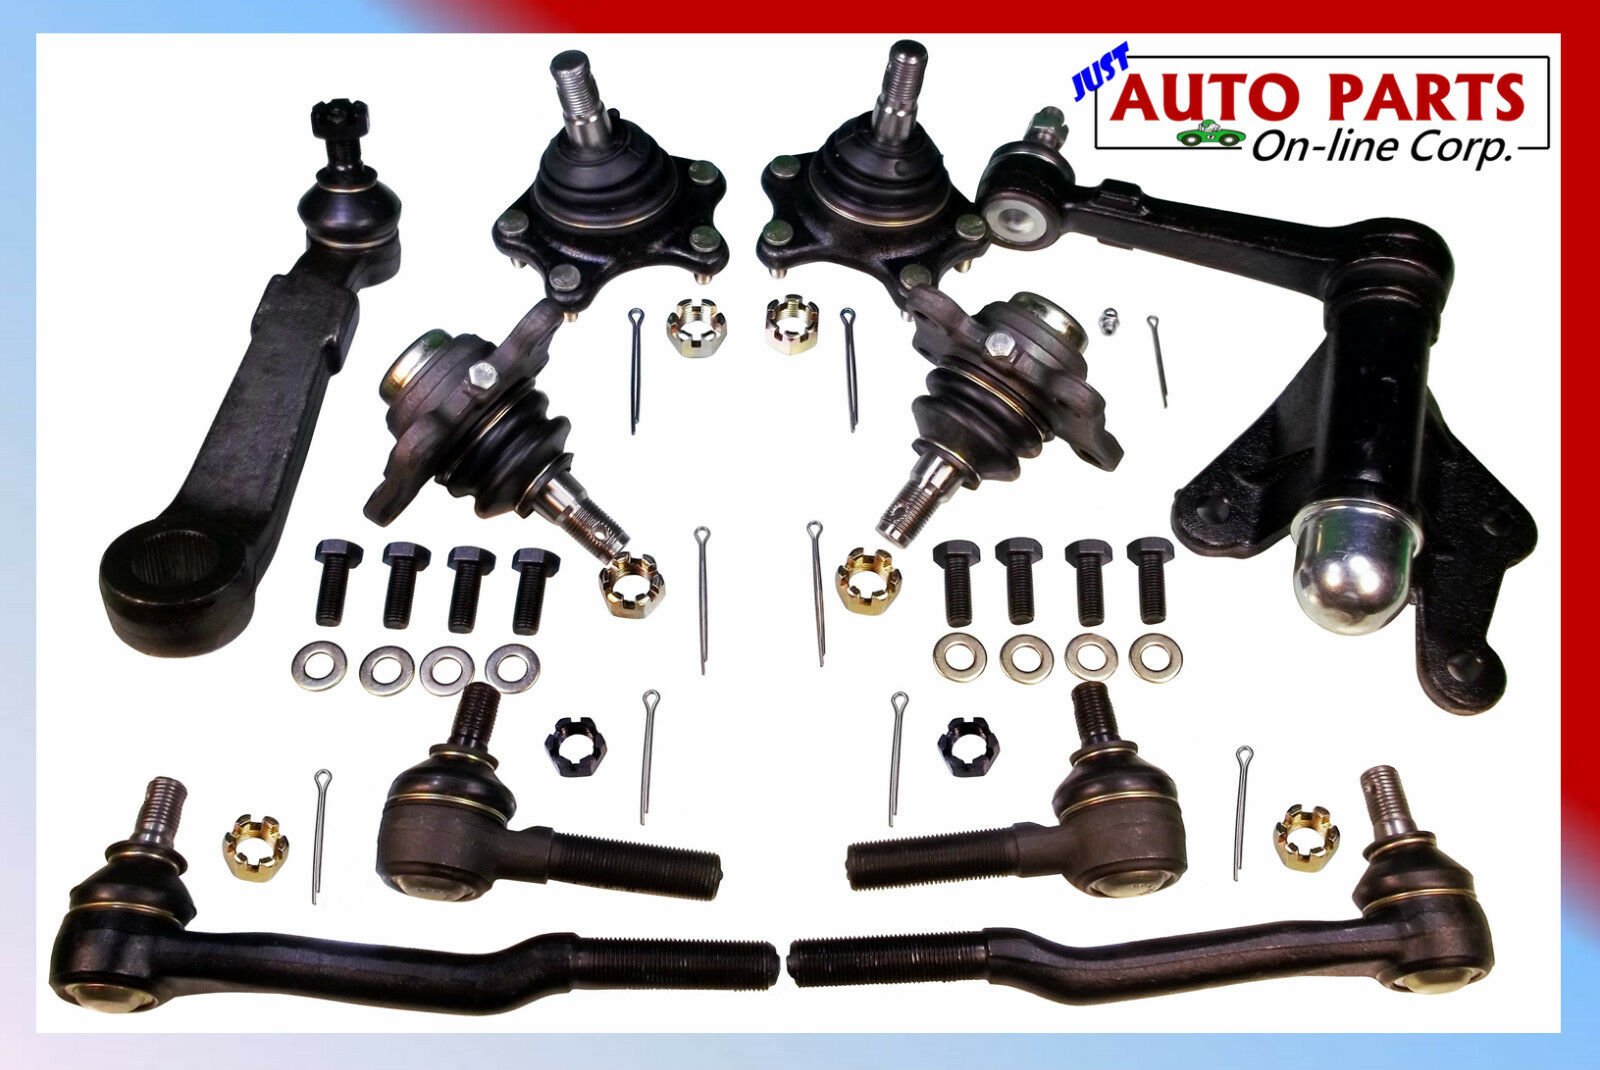 Fits Toyota Pickup 4runner 4wd 86 87 88 89 Ball Joint Tie Rod 2000 1 Of 1only 2 Available